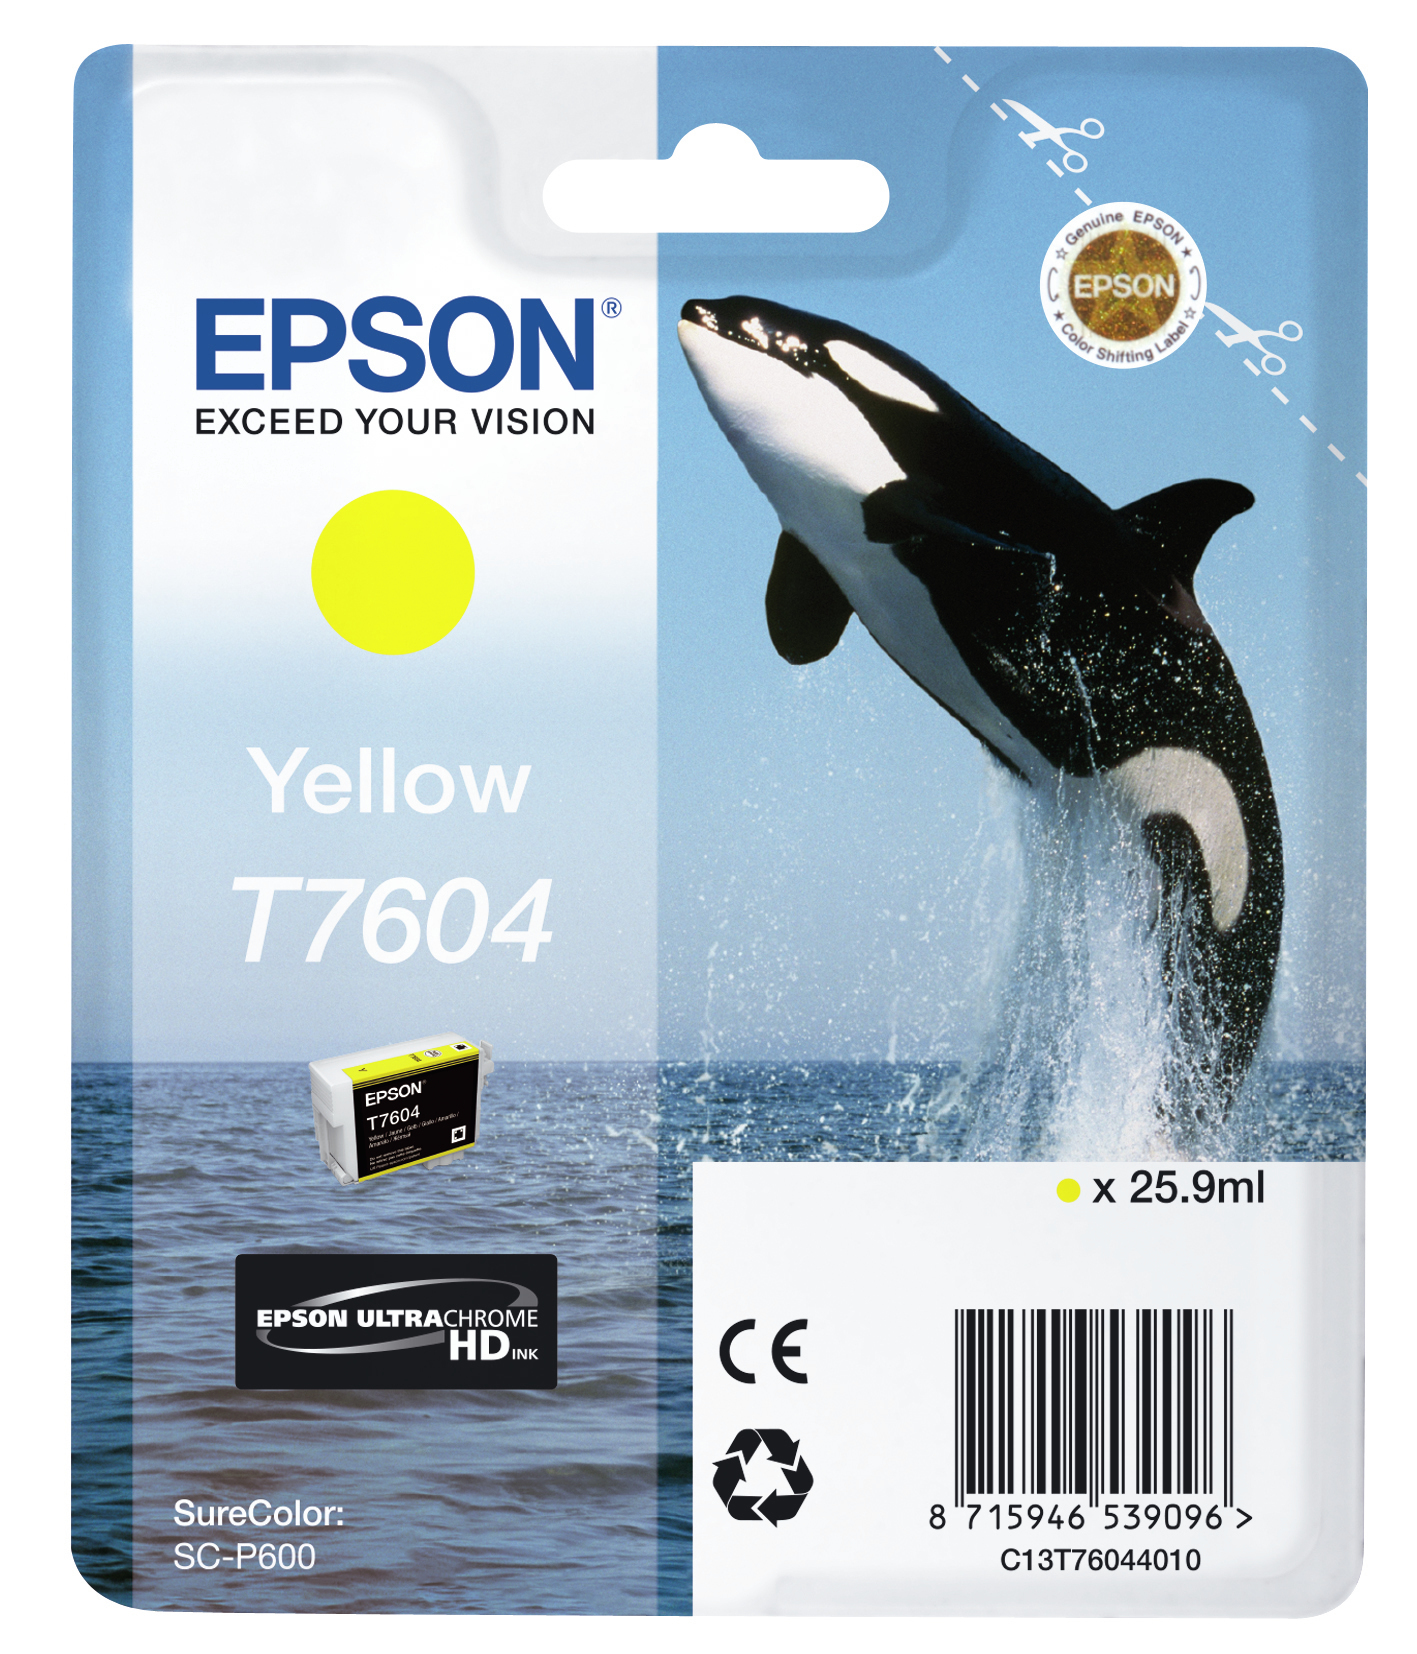 C13t76044010 epson T7604 Yellow Ink 26ml - AD01